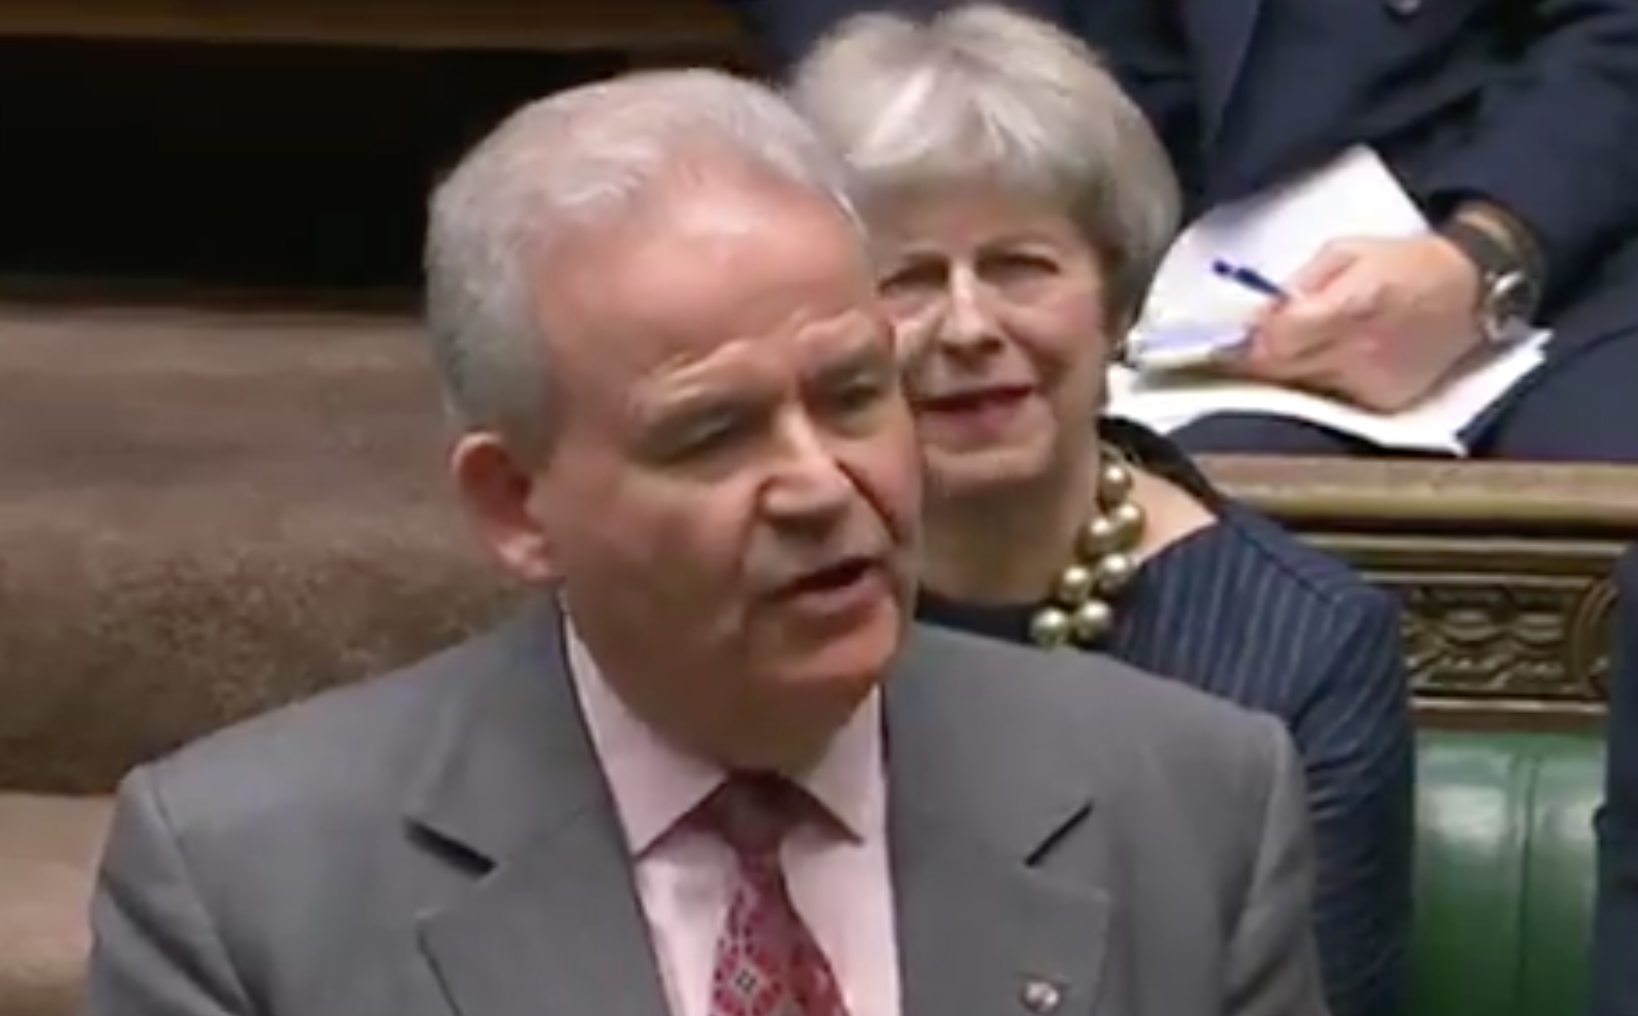 Theresa May rolls her eyes as Tory MP criticises her in Commons